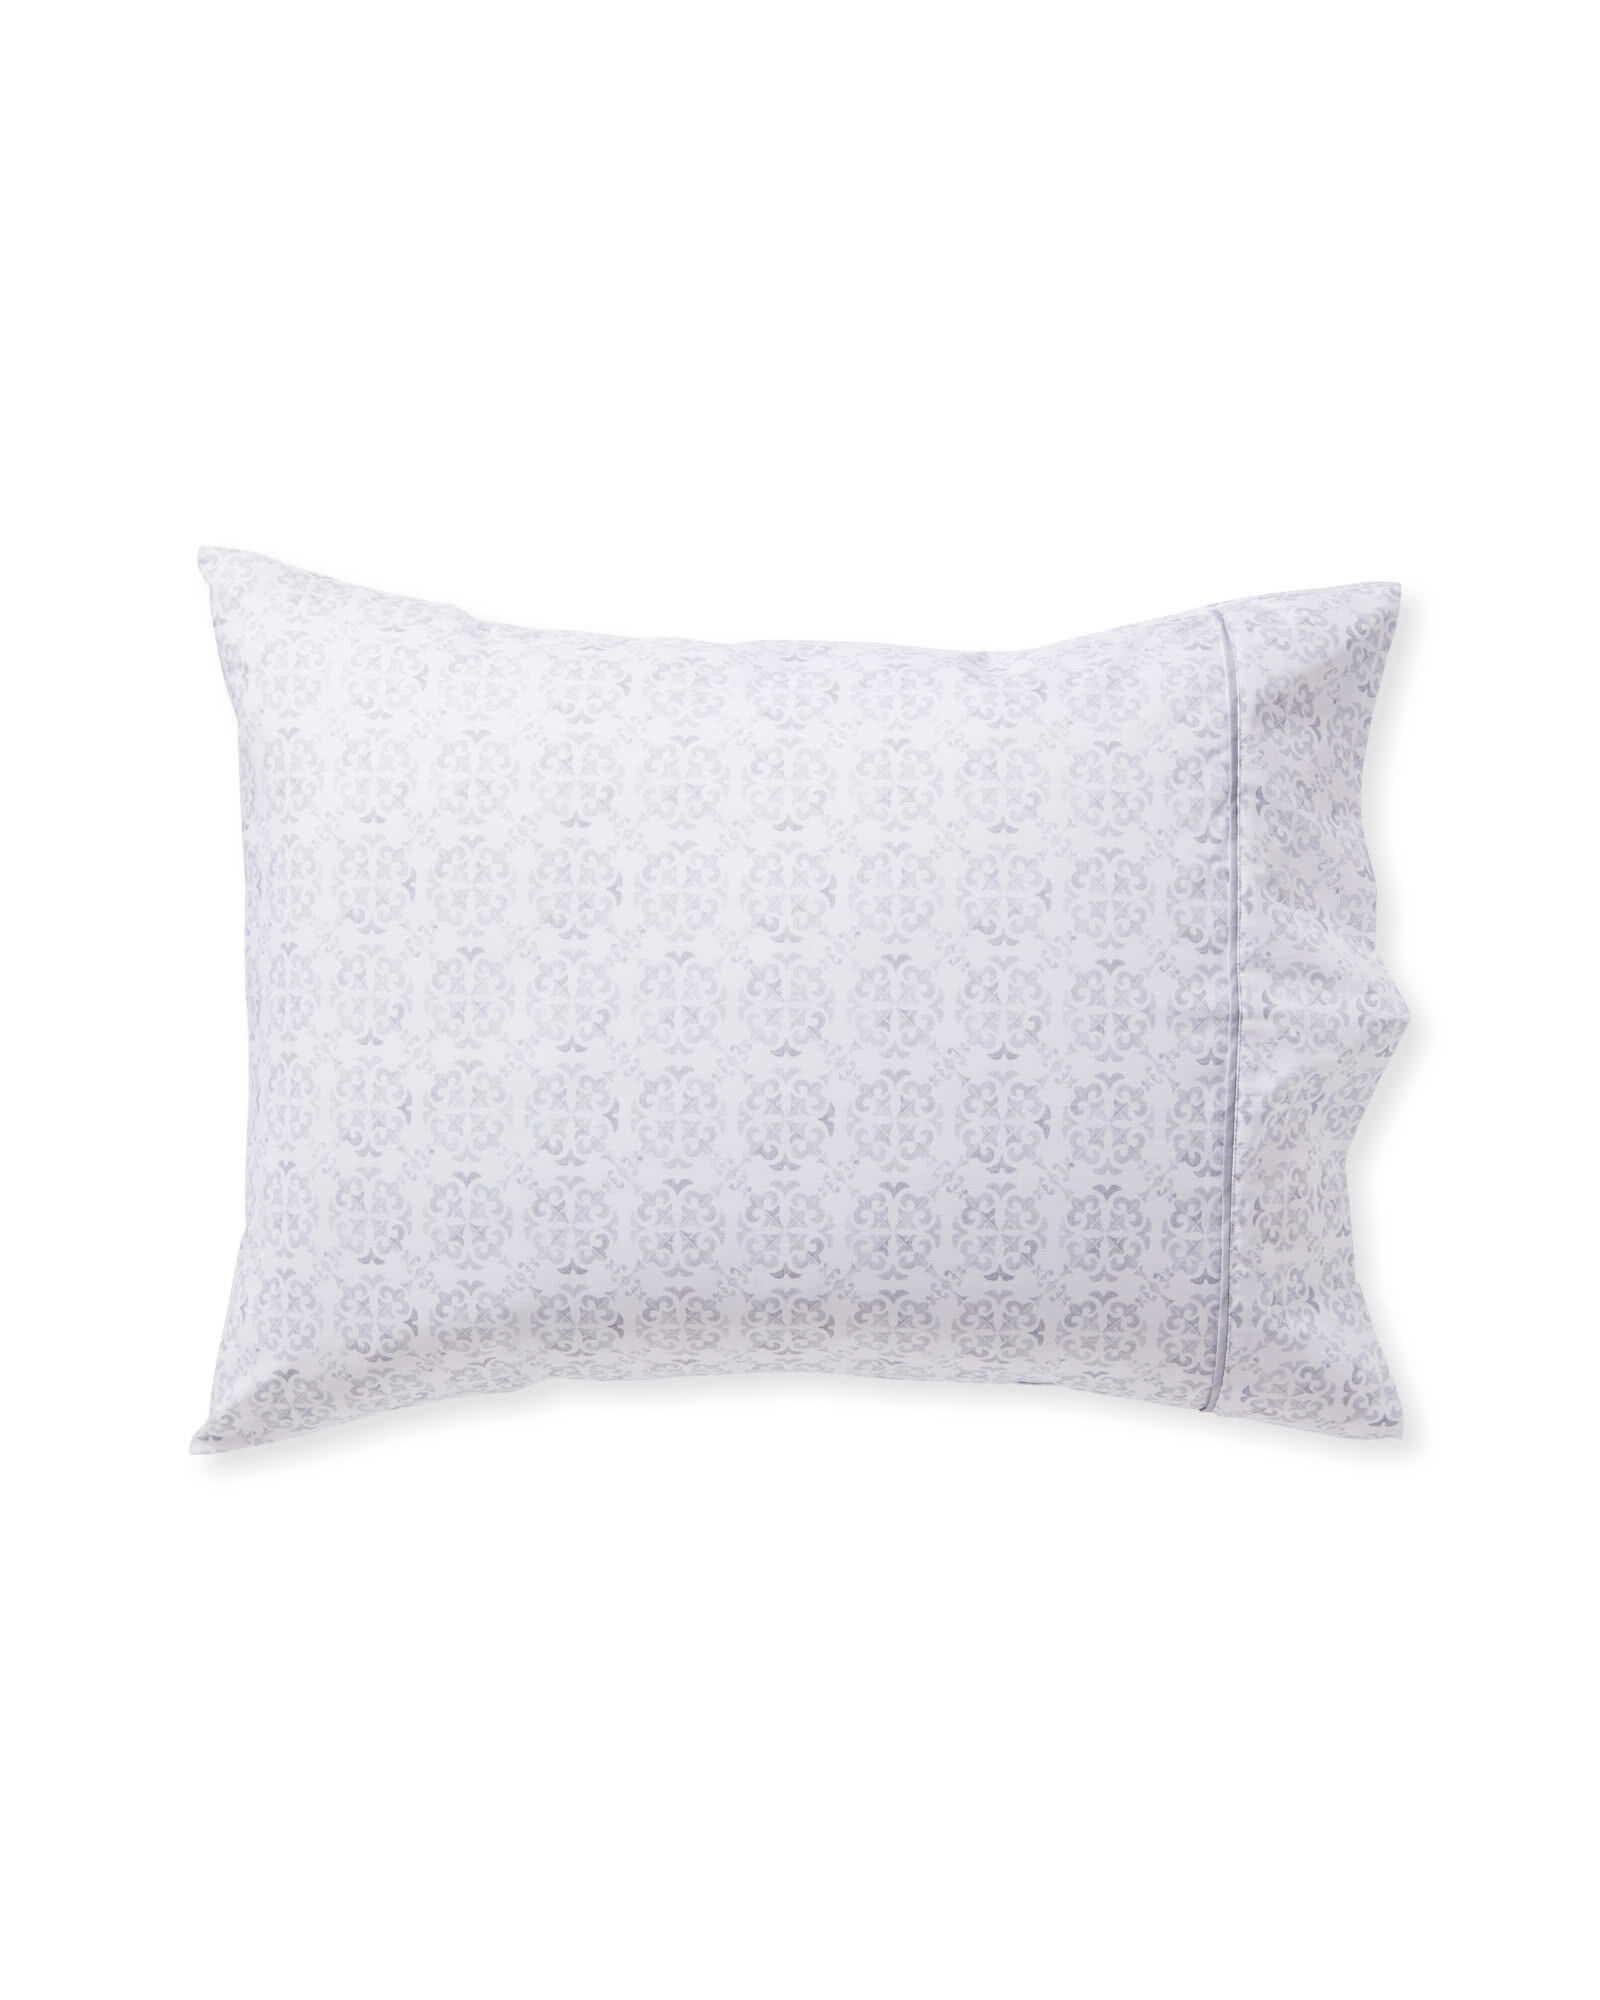 Wentworth Pillowcases (Set of 2), Grey